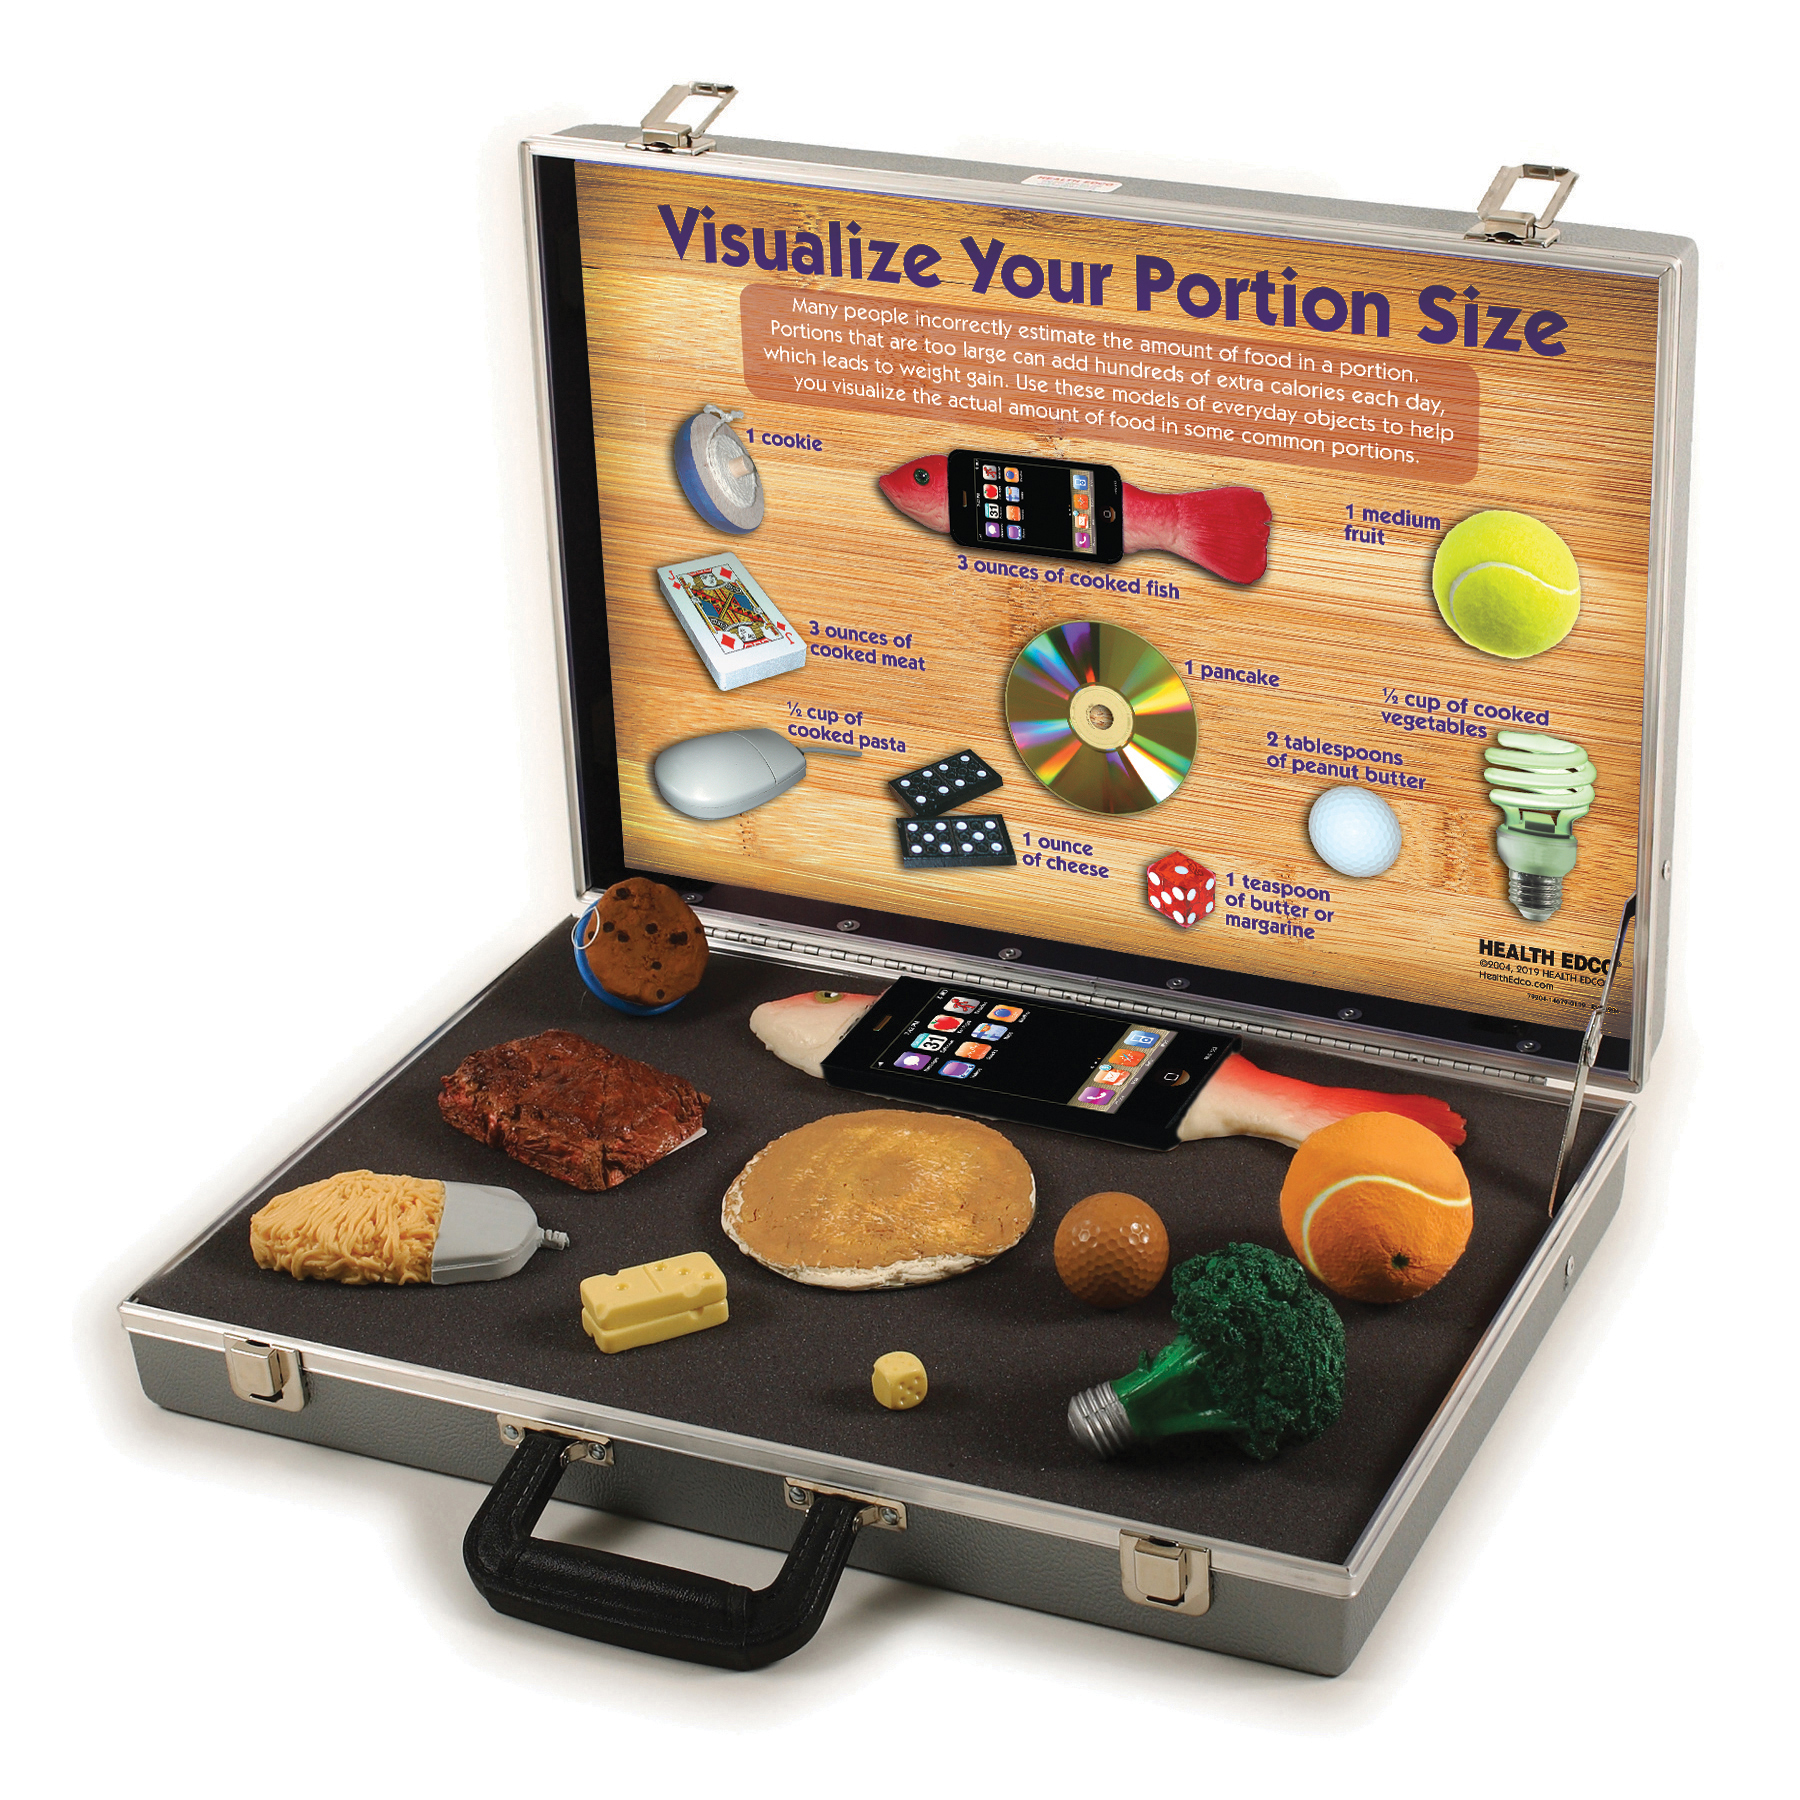 Educational Healthy Portion Size Display | Health Edco